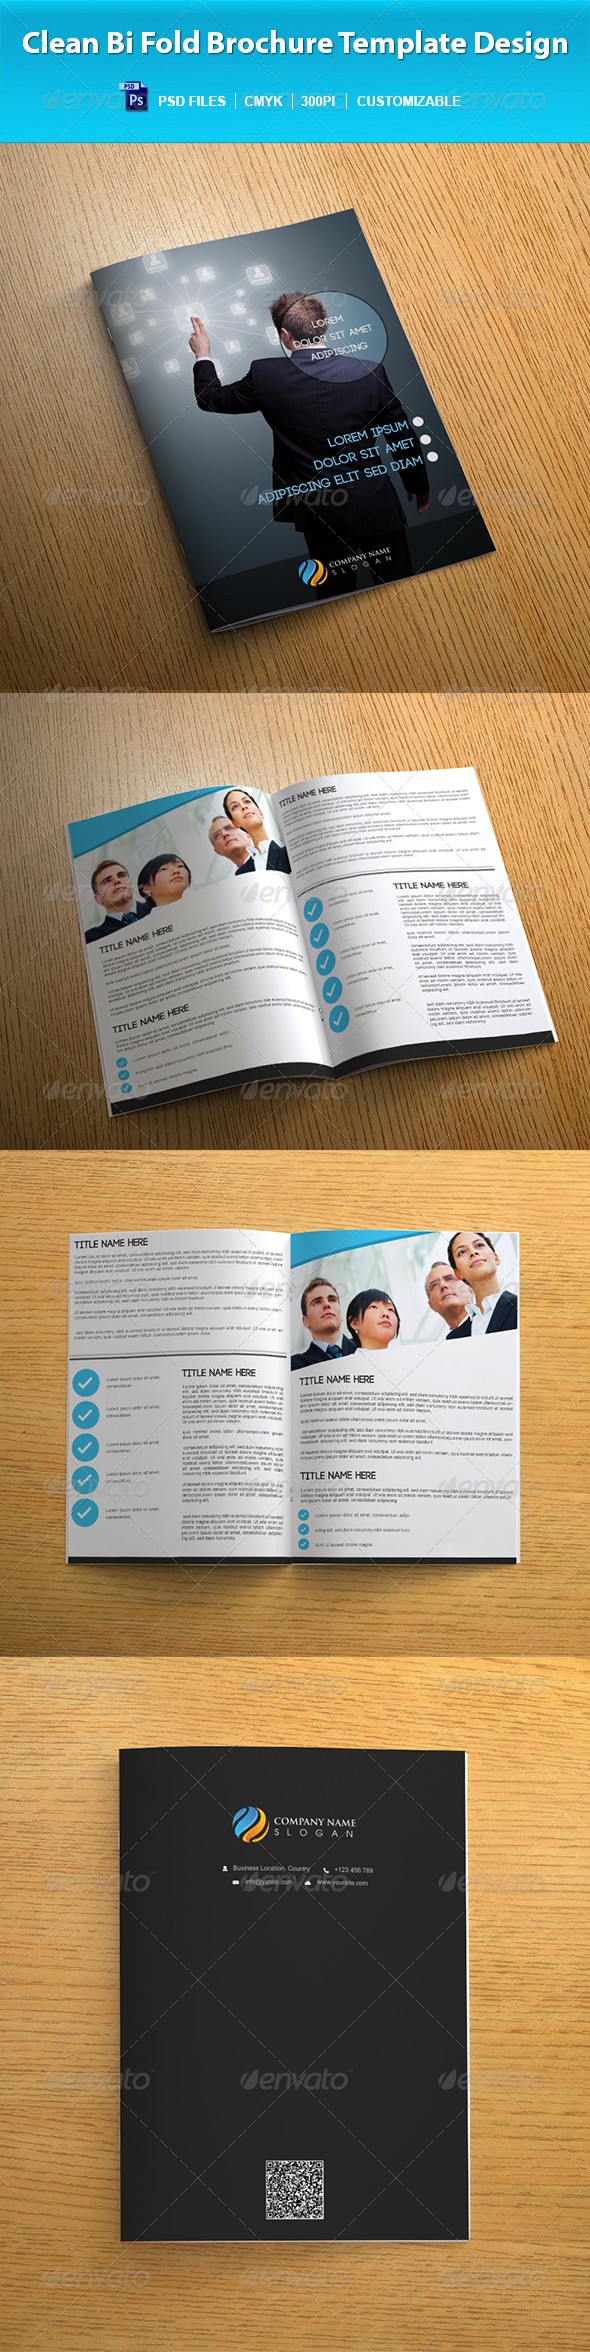 GraphicRiver Clean Bi Fold Brochure Template Design 7290501